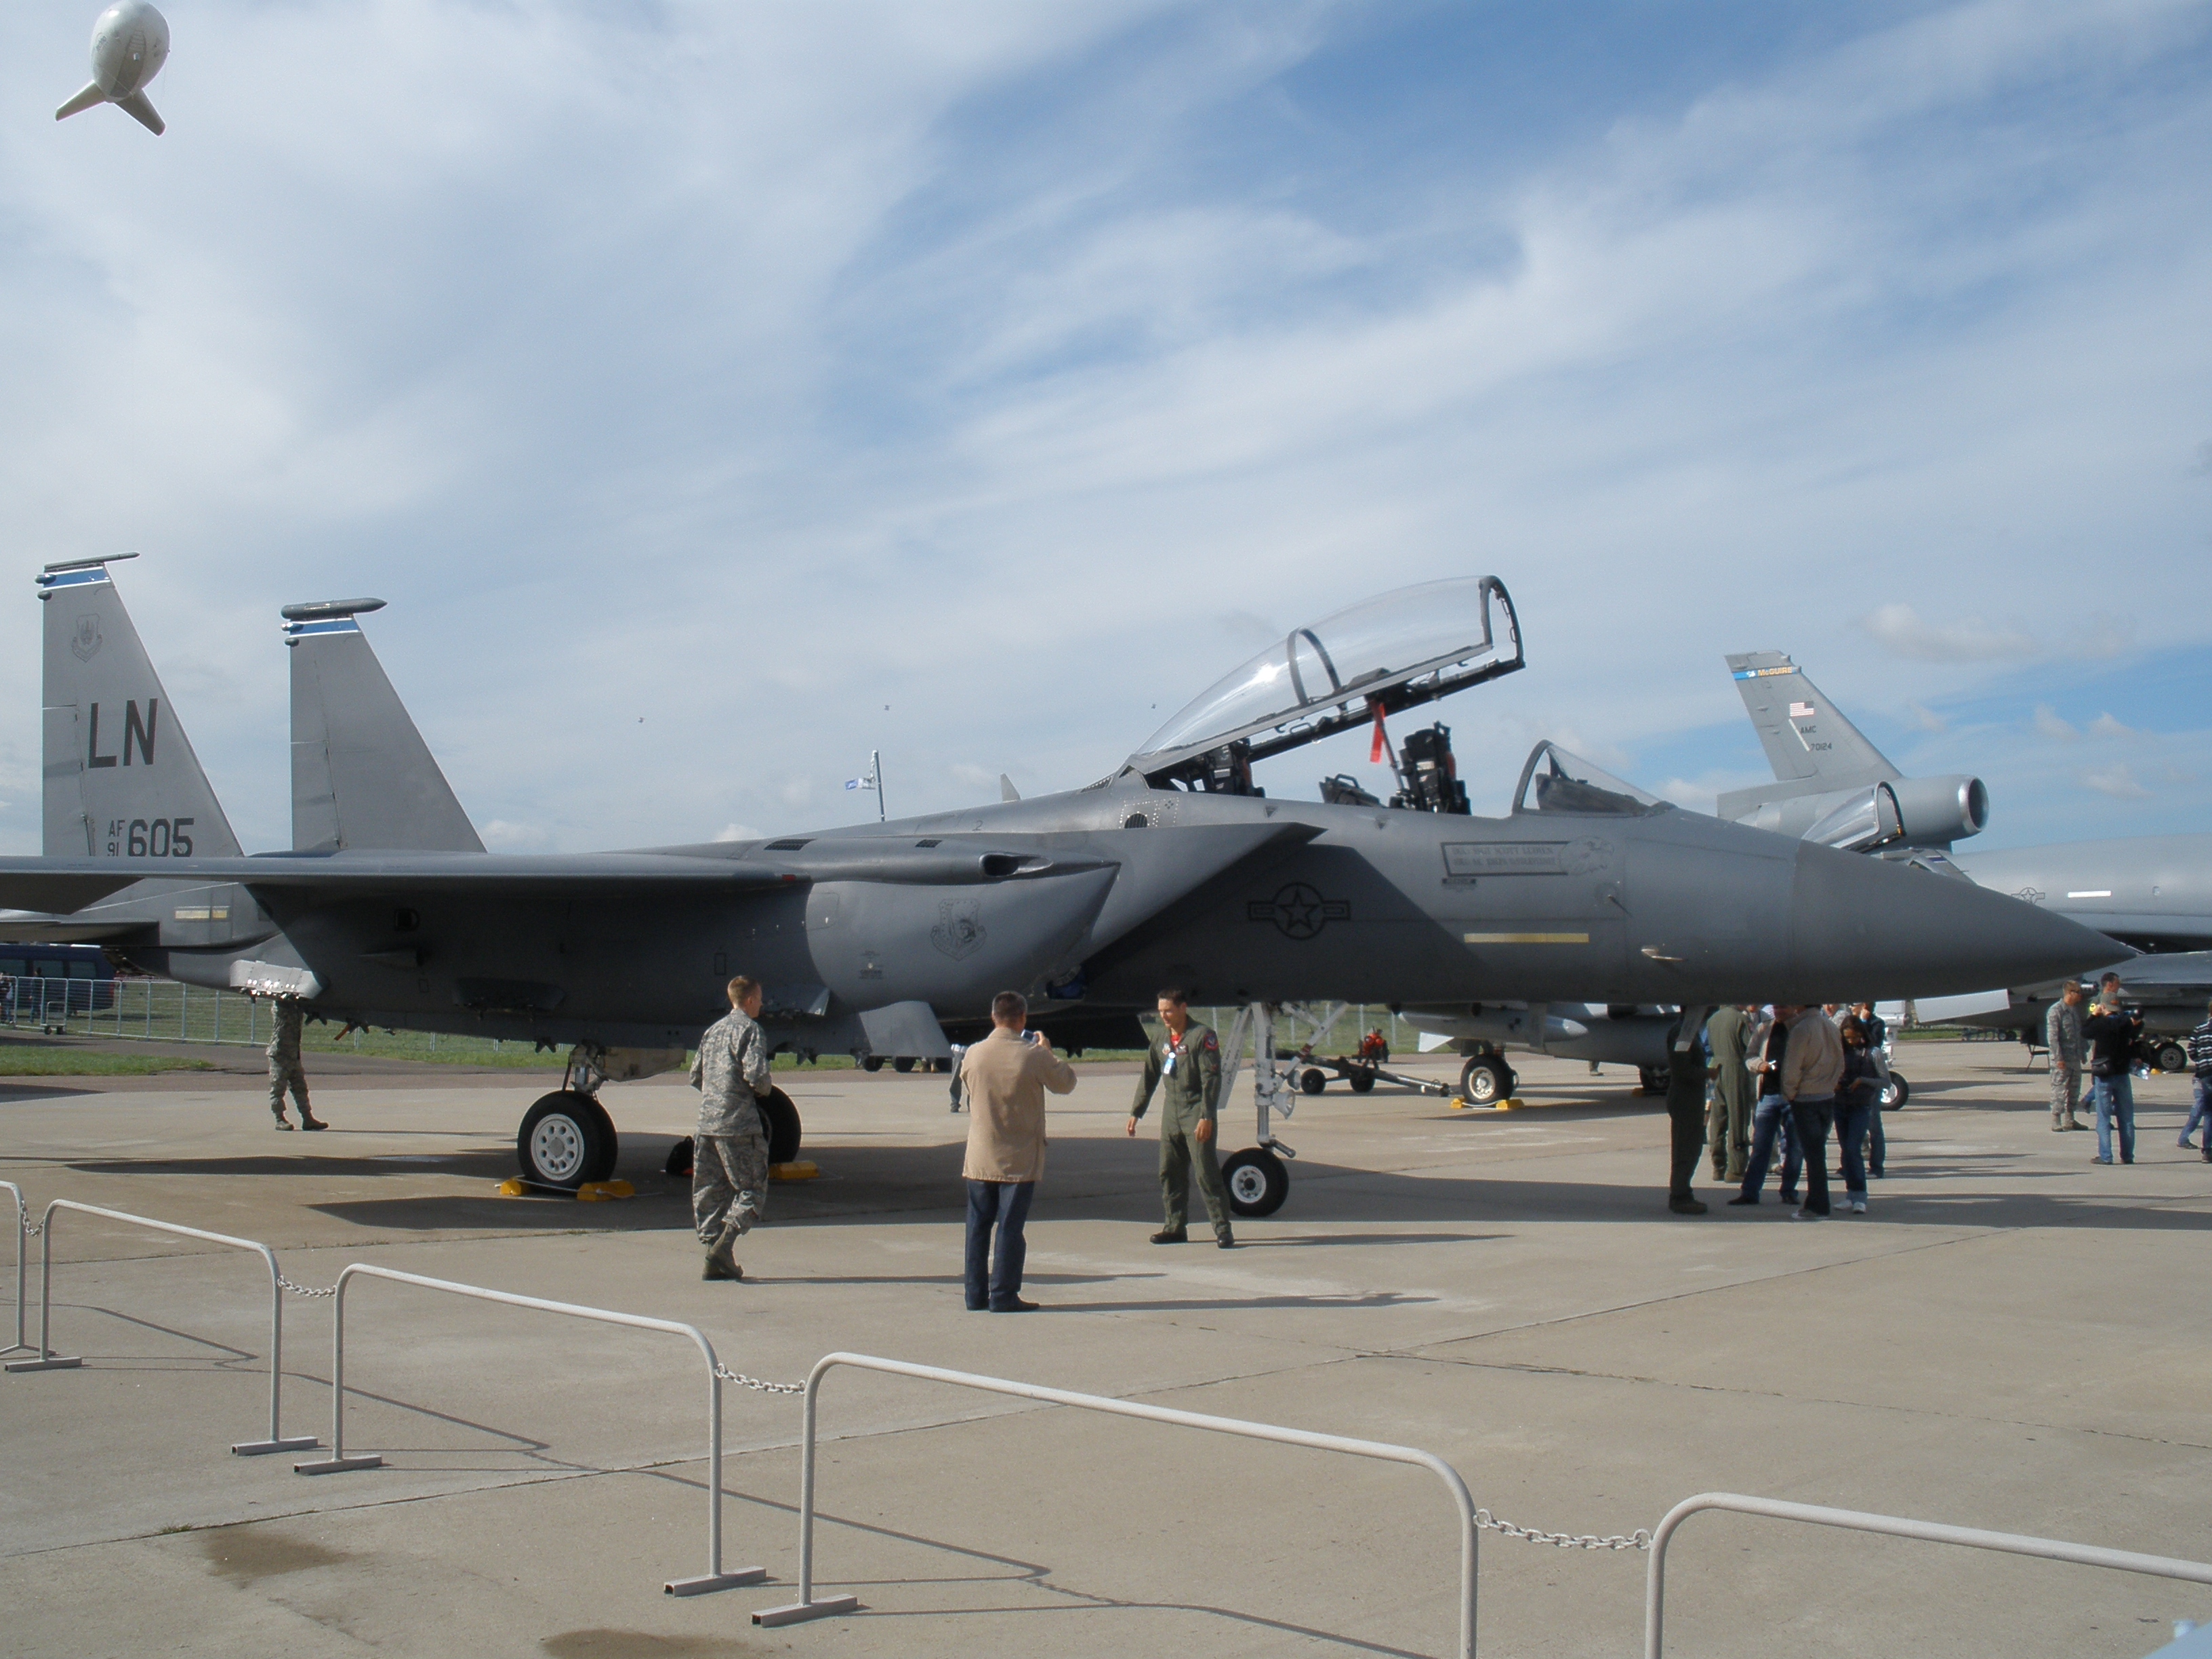 File:F-15 at MAKS-2011 airshow.jpg - Wikimedia Commons